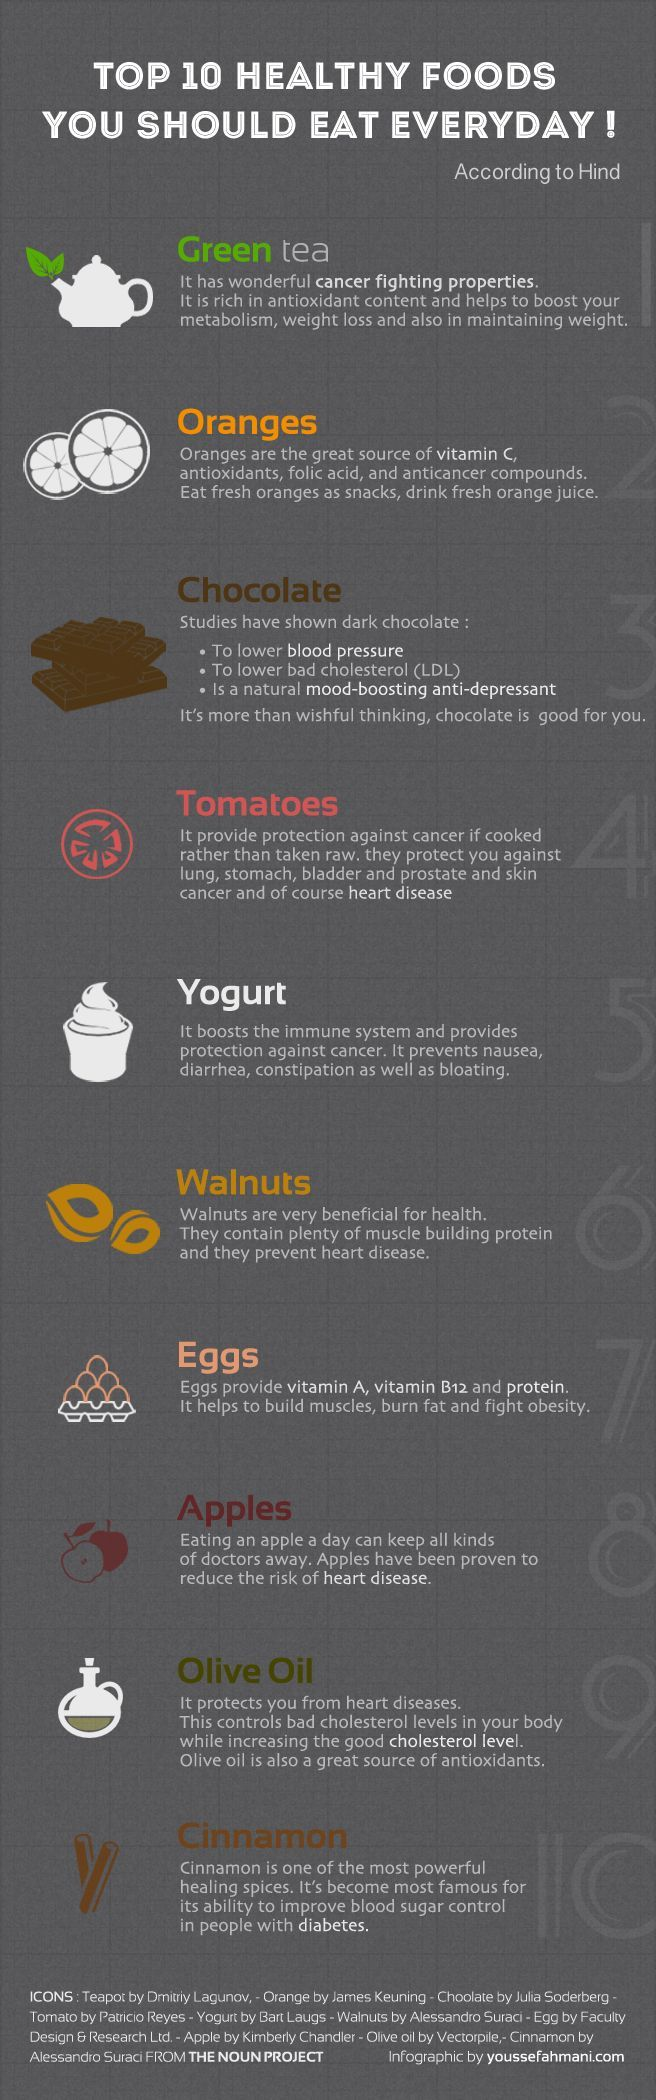 This infographic explains where your food comes from, what's in it, and what toxic things it is doing to your body. Health risks come from everything from diseased animals, pesticides, drugs, and chemicals.